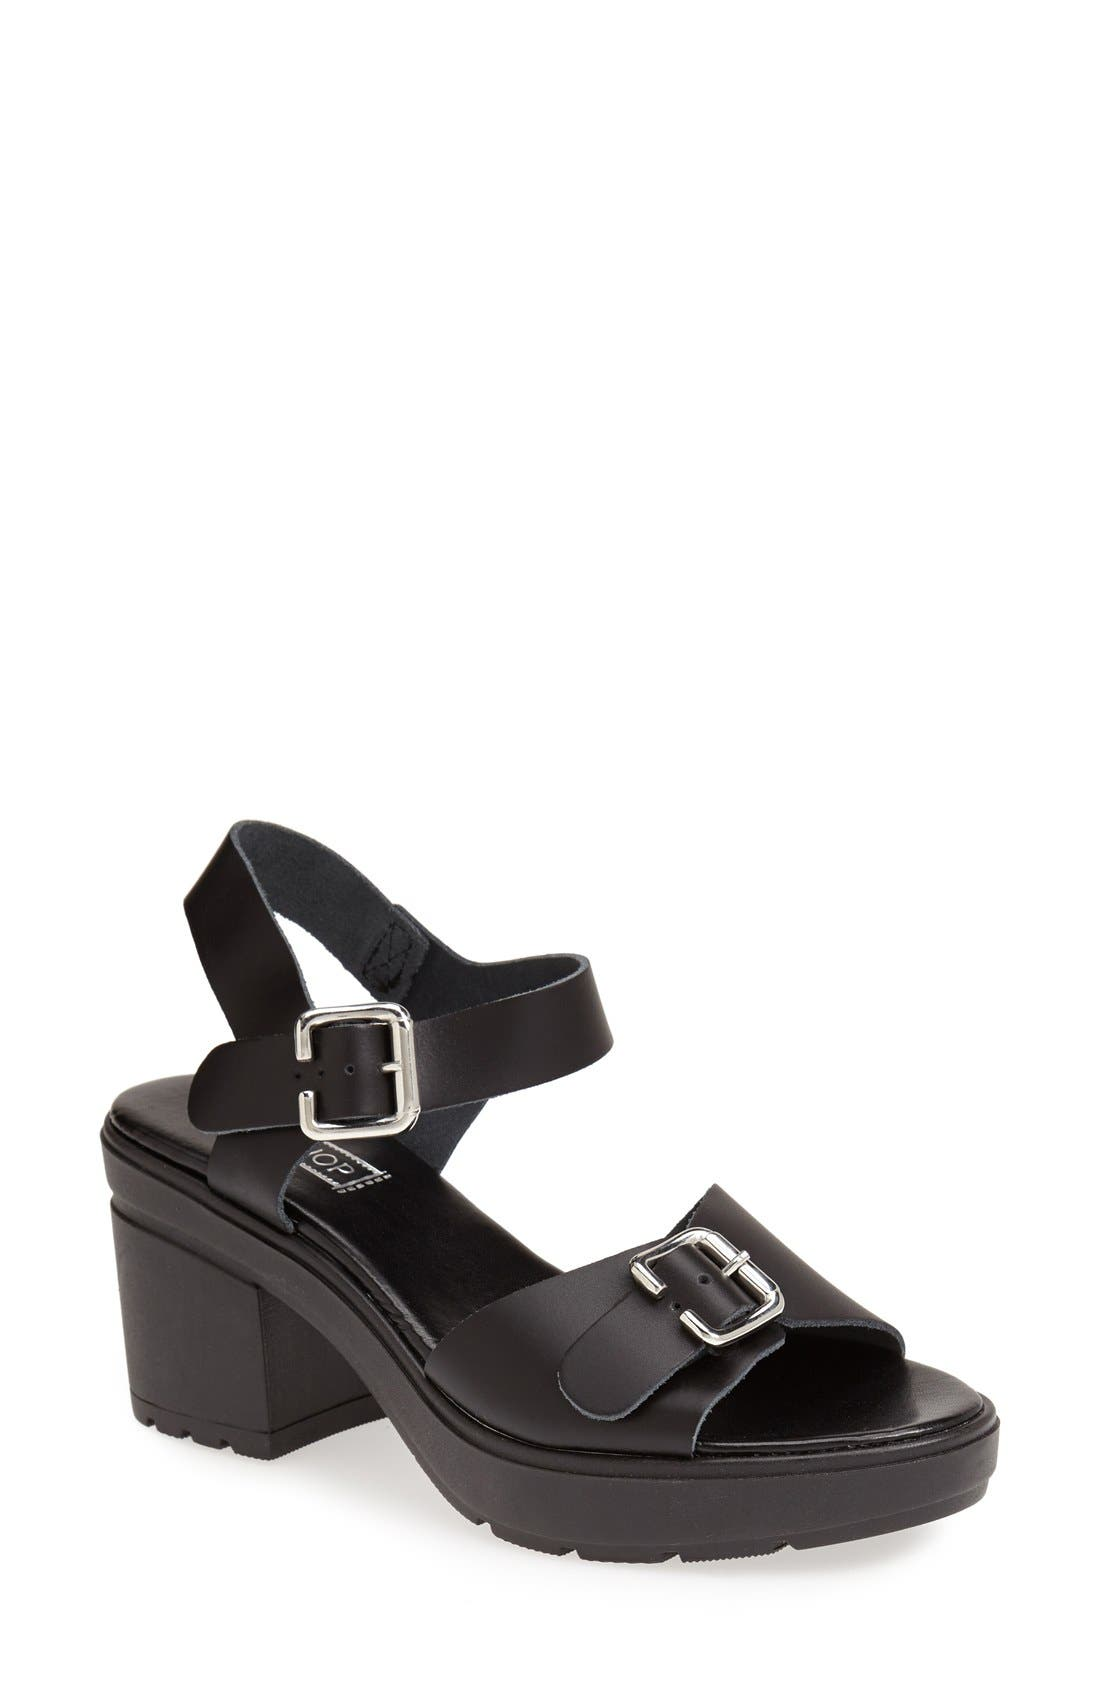 Main Image - Topshop 'Niece' Platform Leather Sandal (Women)